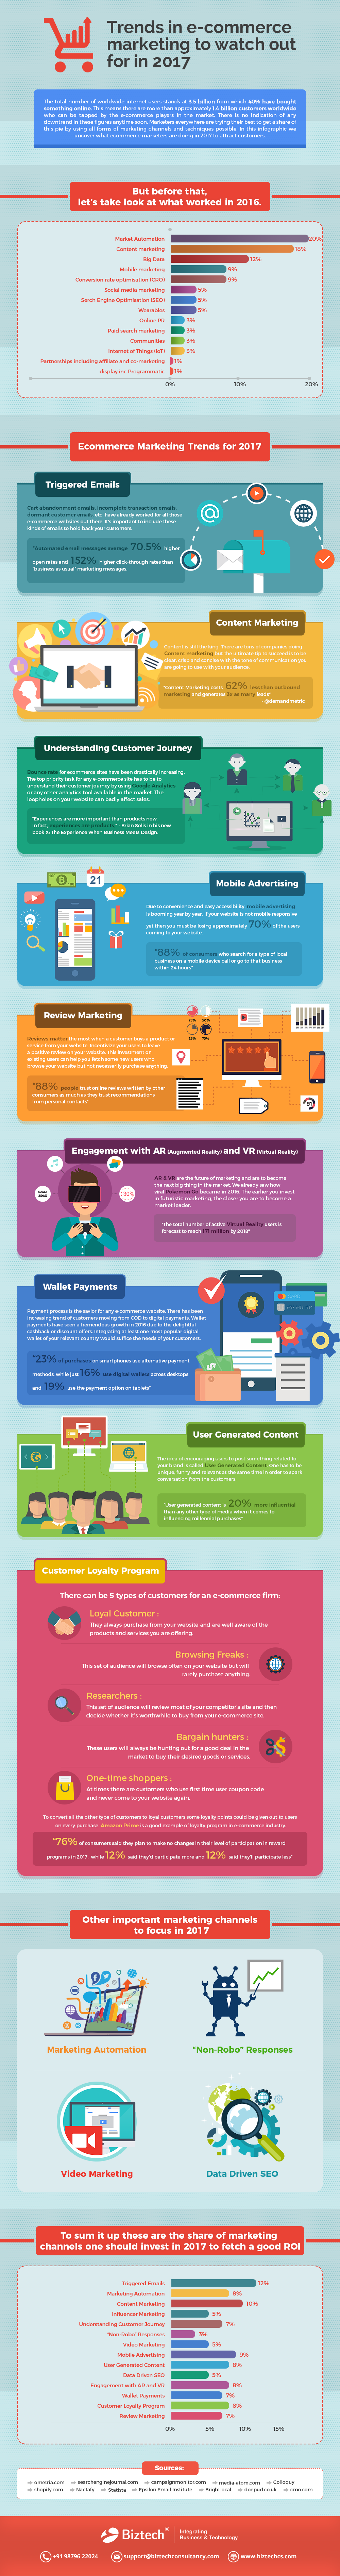 Ecommerce Marketing Trends to Watch Out for in 2017 - infographic